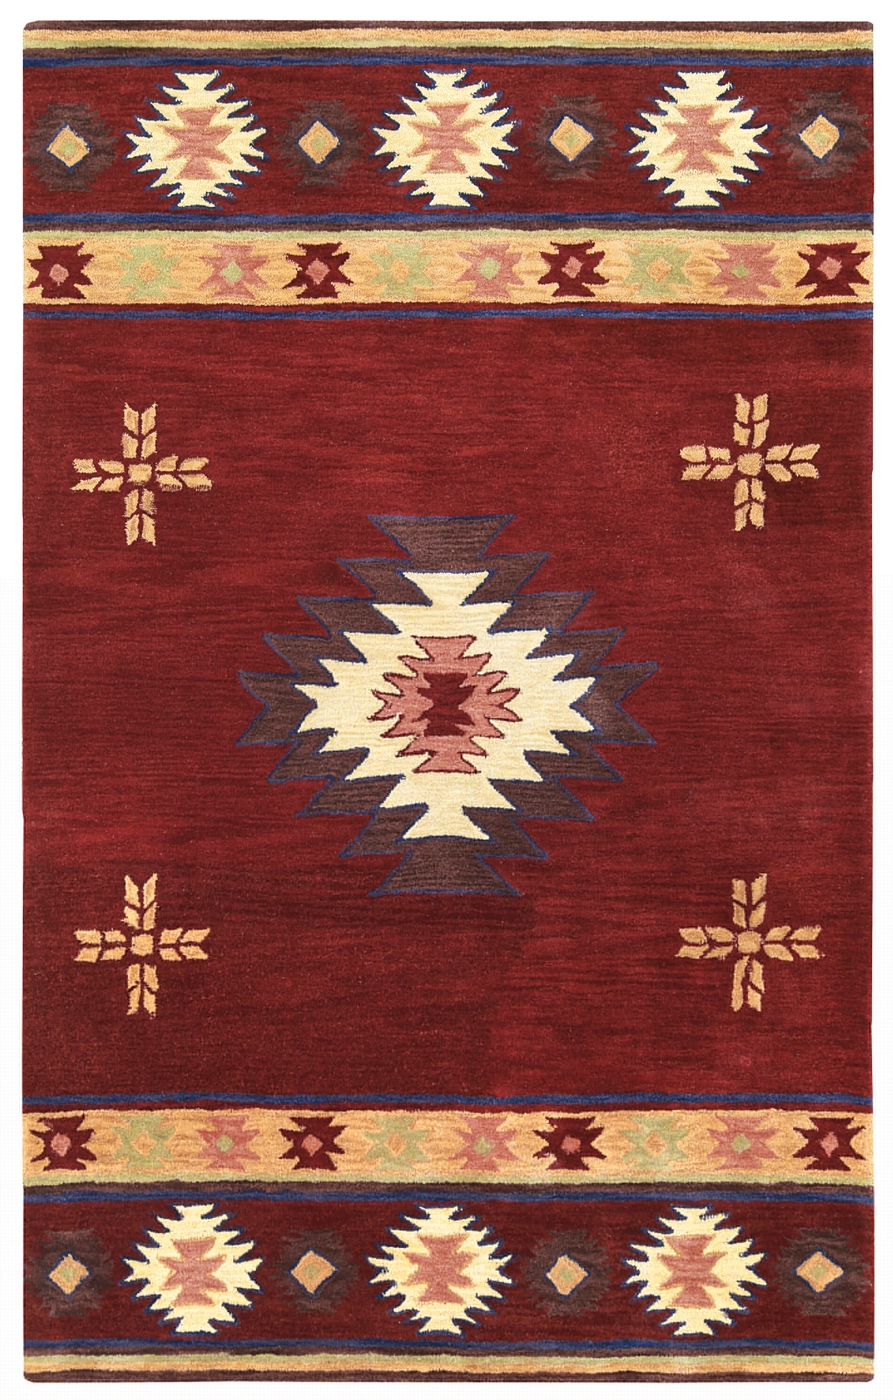 Southwest Indian Pattern Wool Area Rug In Red Tan Sage